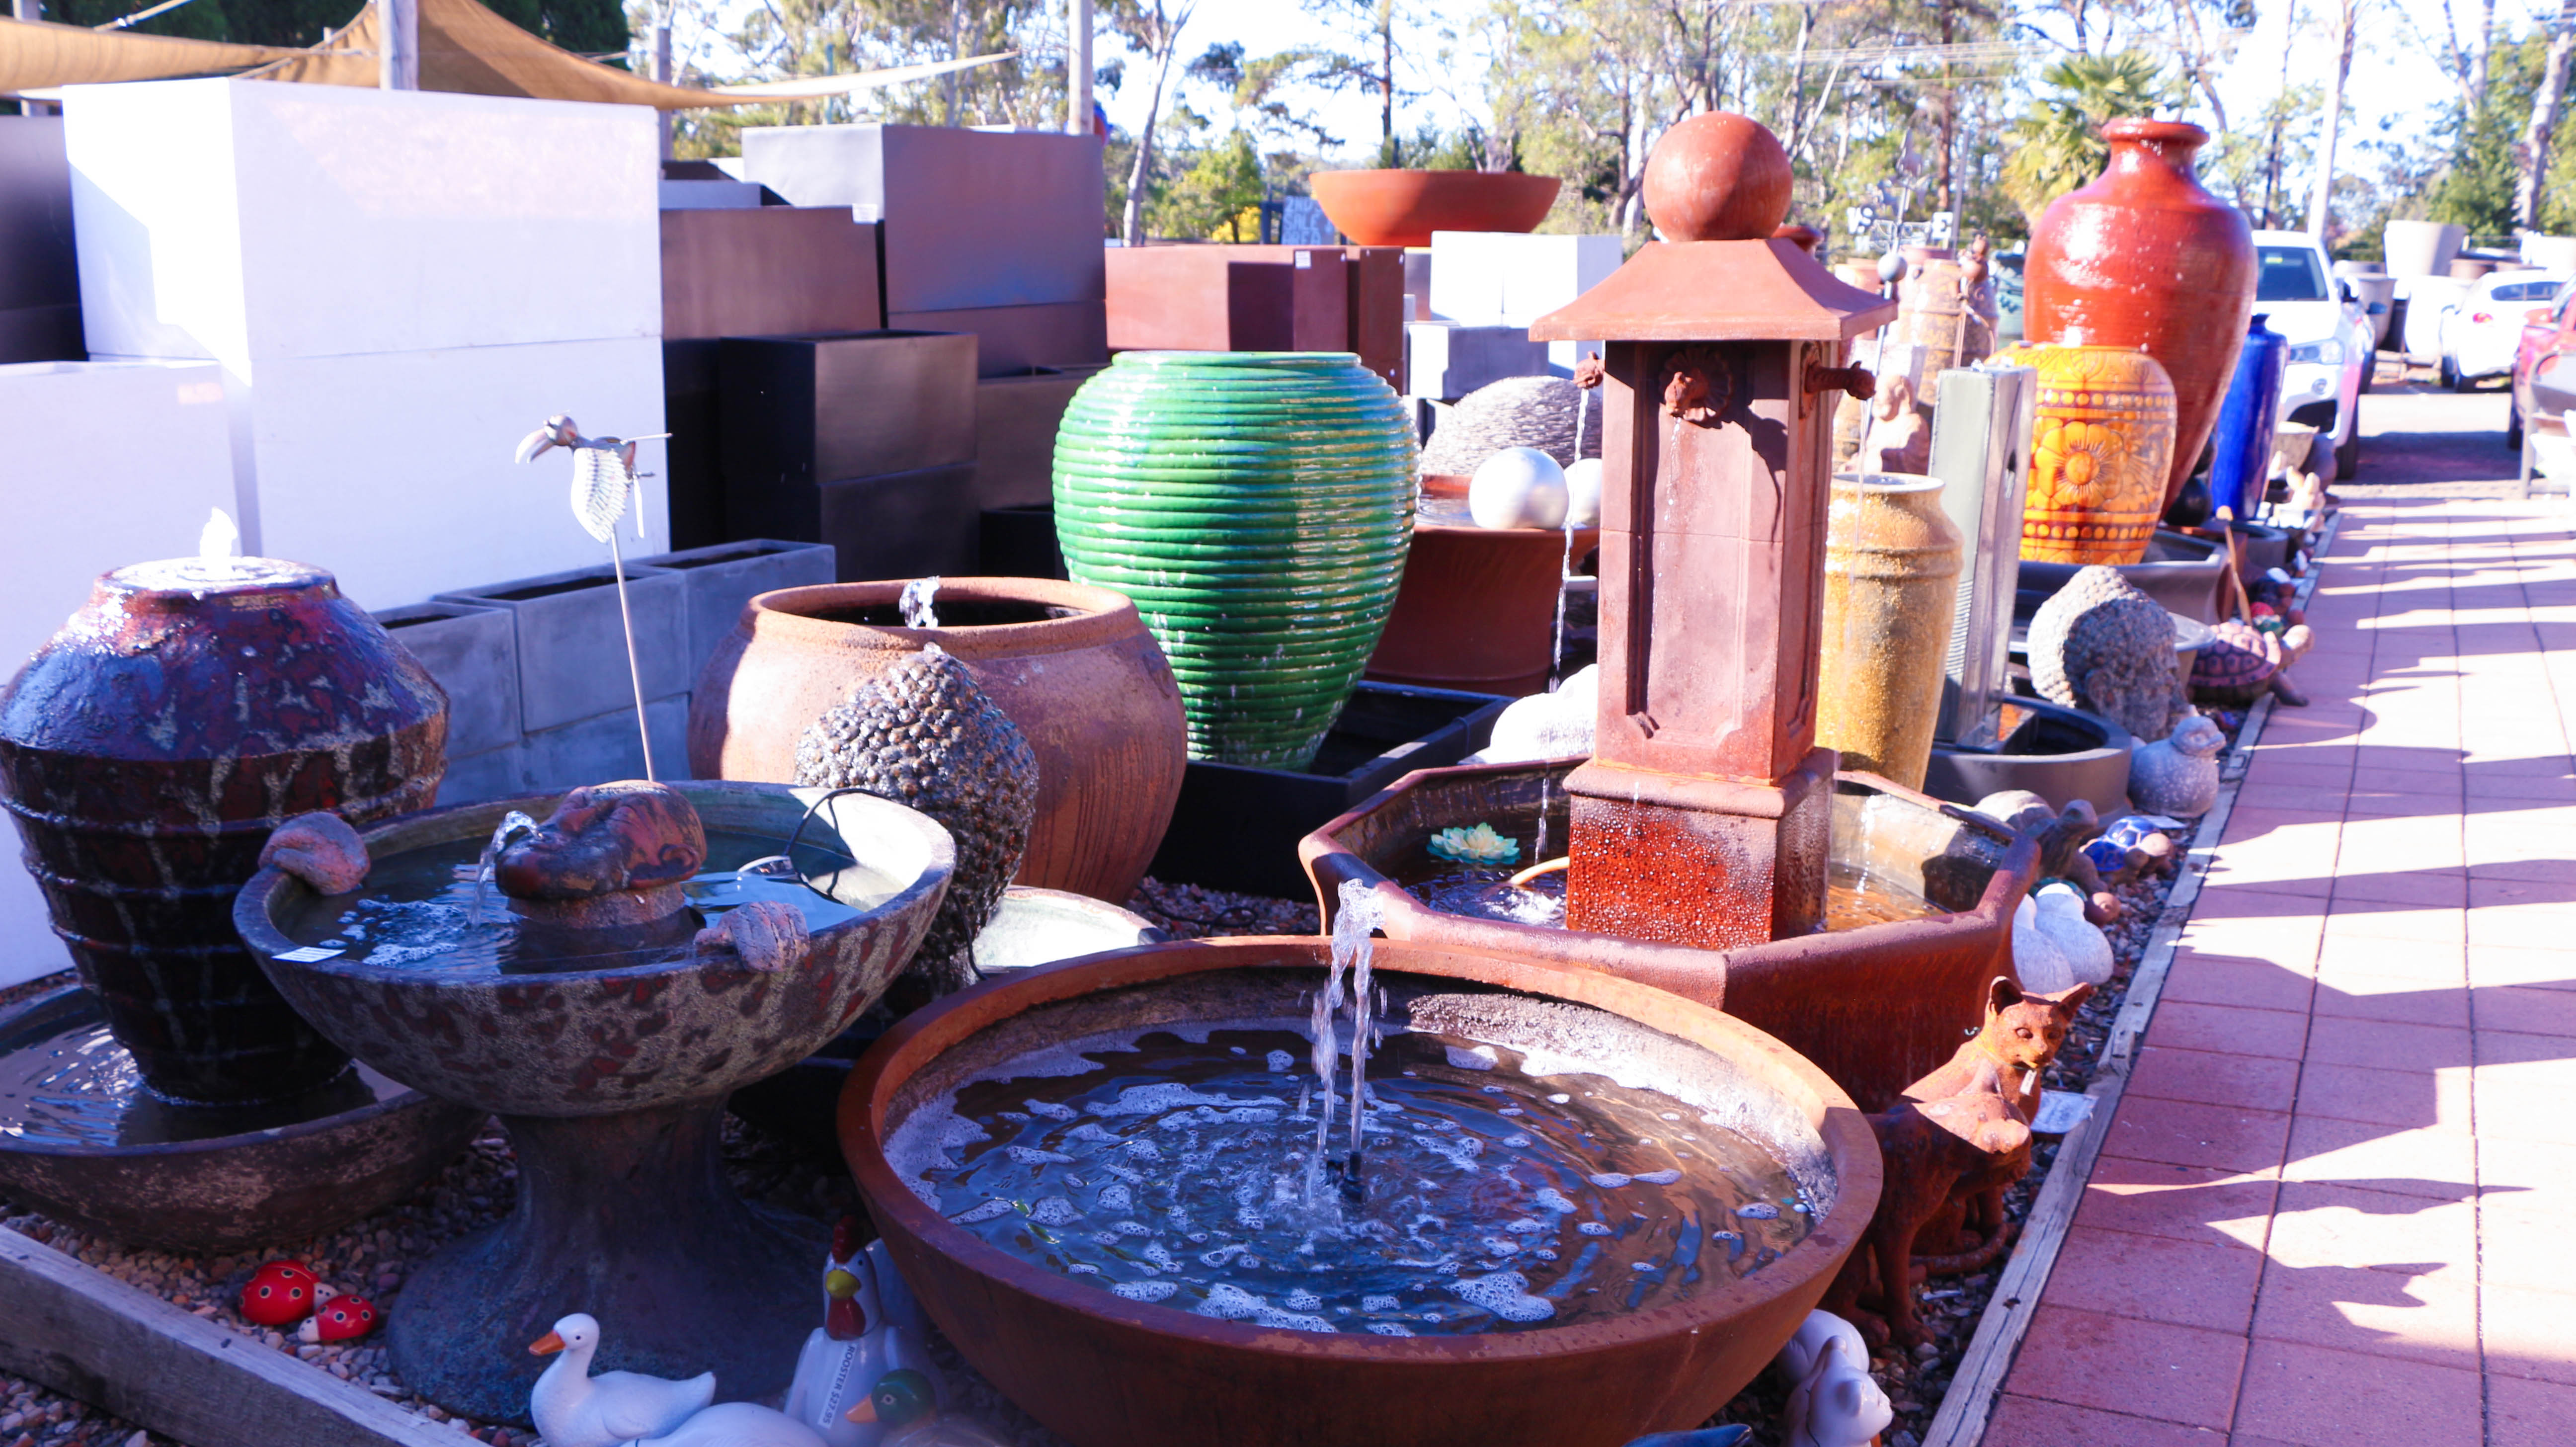 Pots for sale in Dural